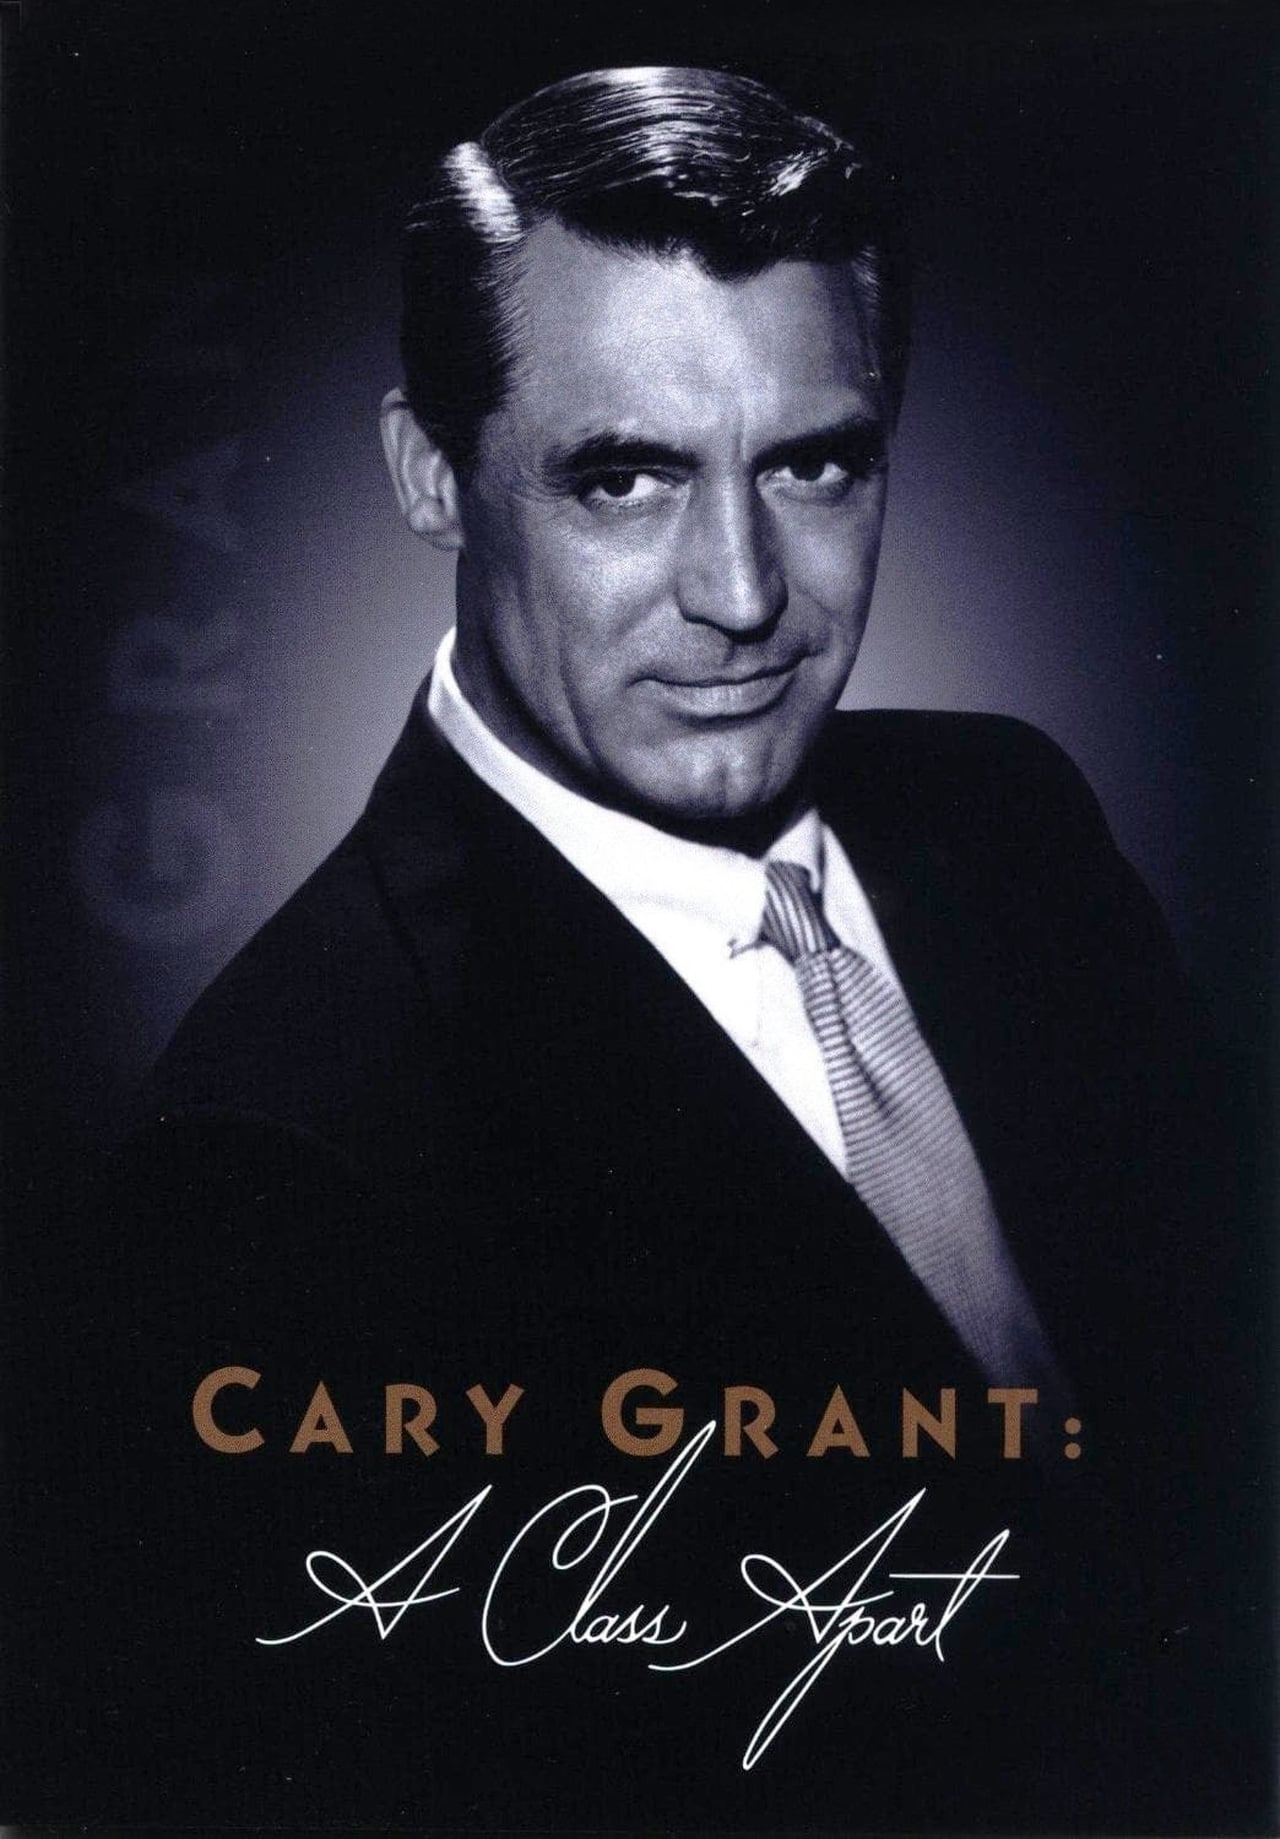 Cary Grant: A Class Apart